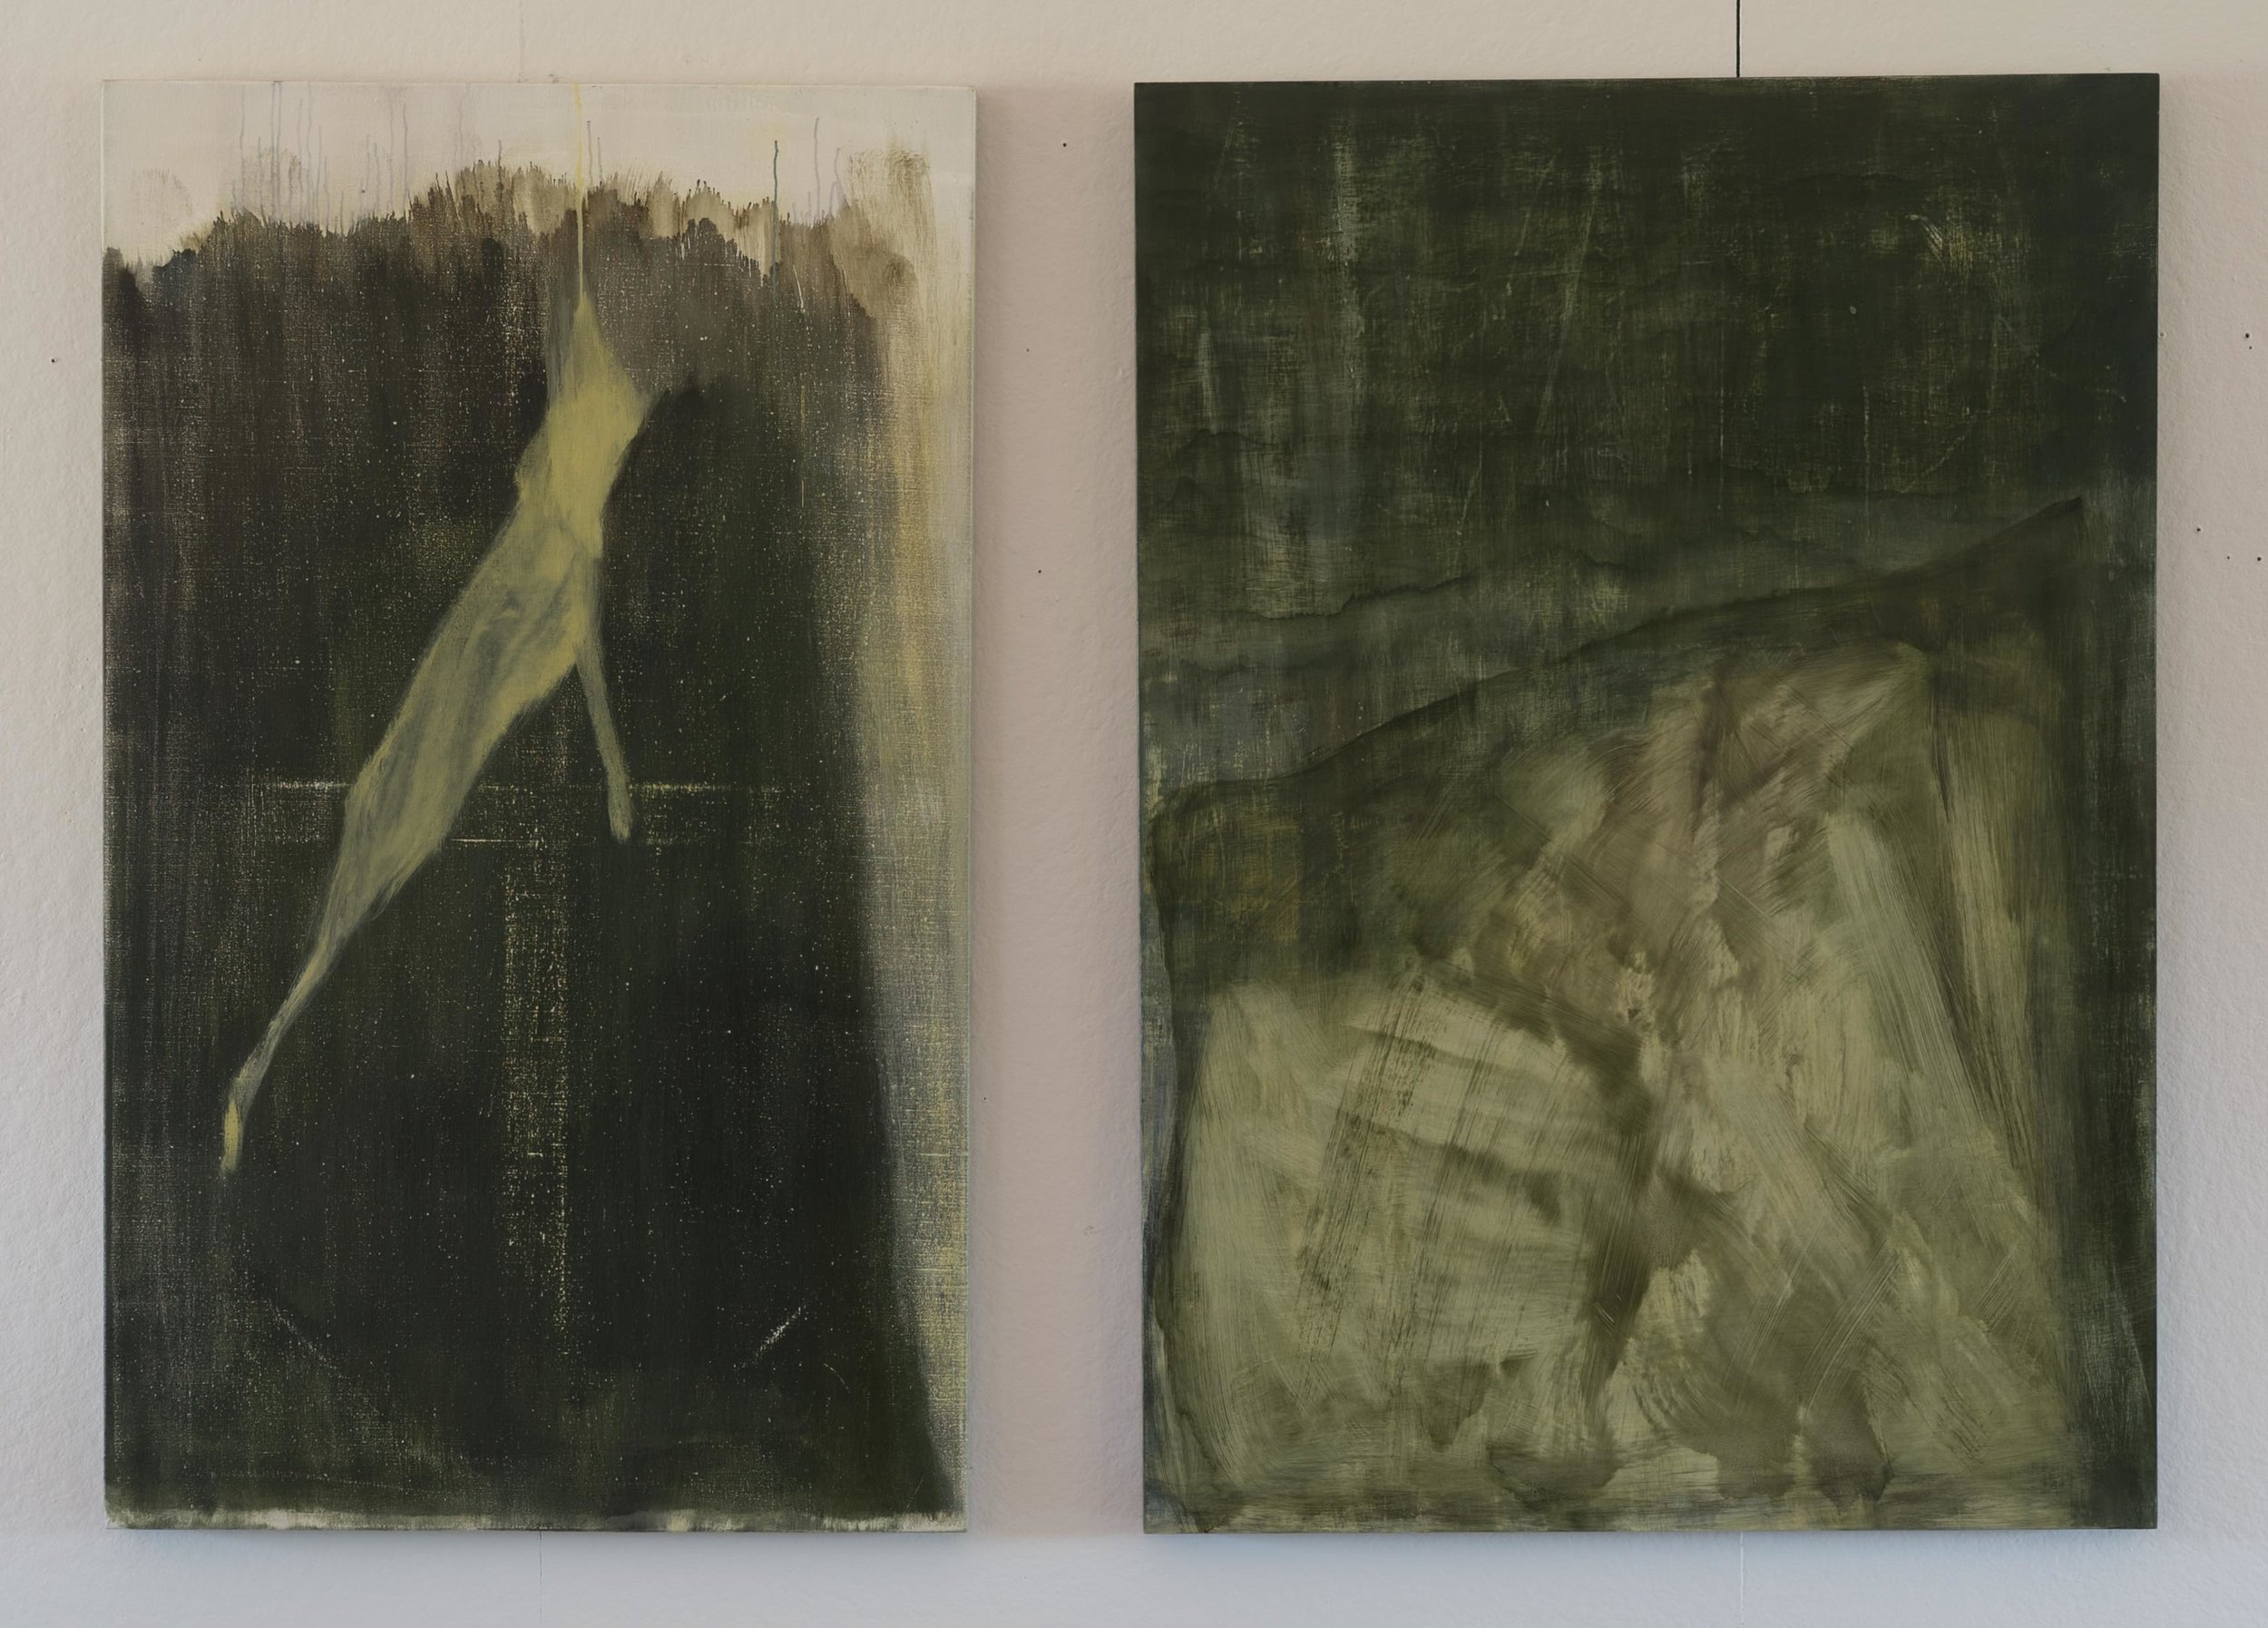 Vertical Green  2015  diptych  50 x 65in  oil on linen + oil on wood panel  photo: Sasha Schell